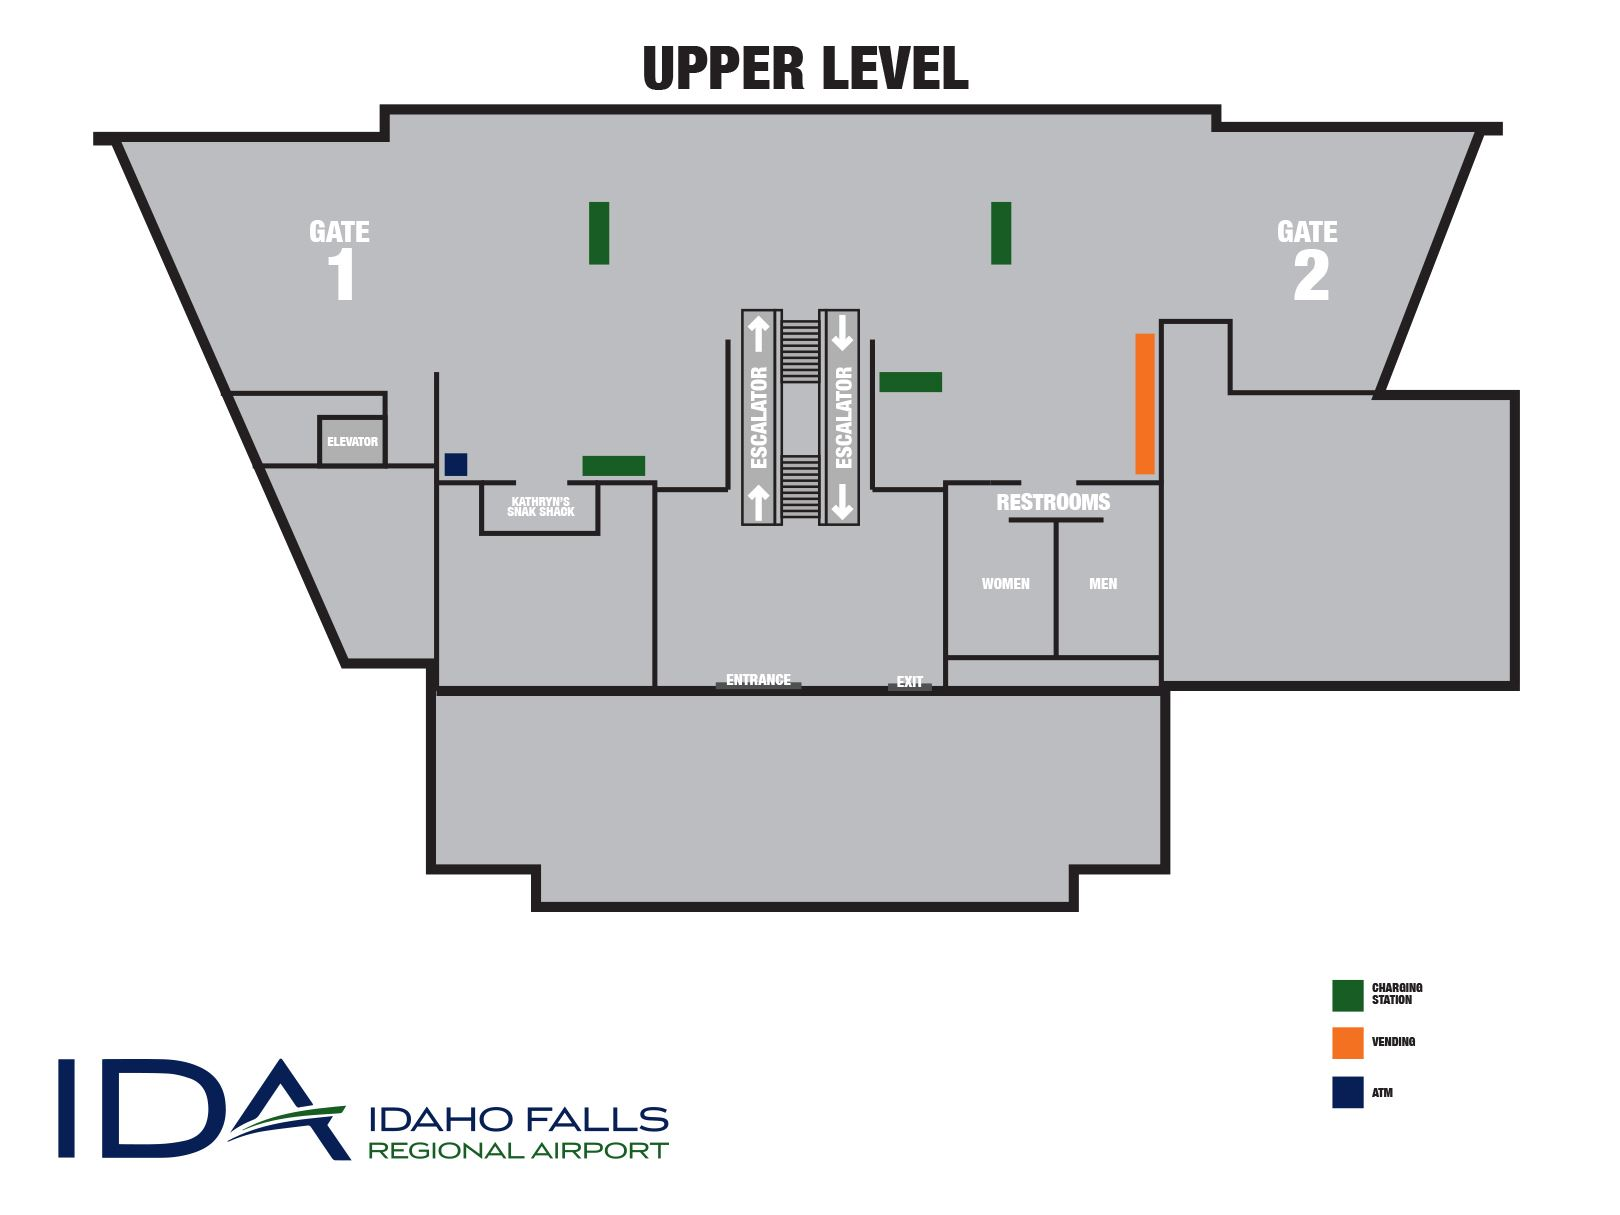 A map of the upper level terminal at Idaho Falls Regional Airport.